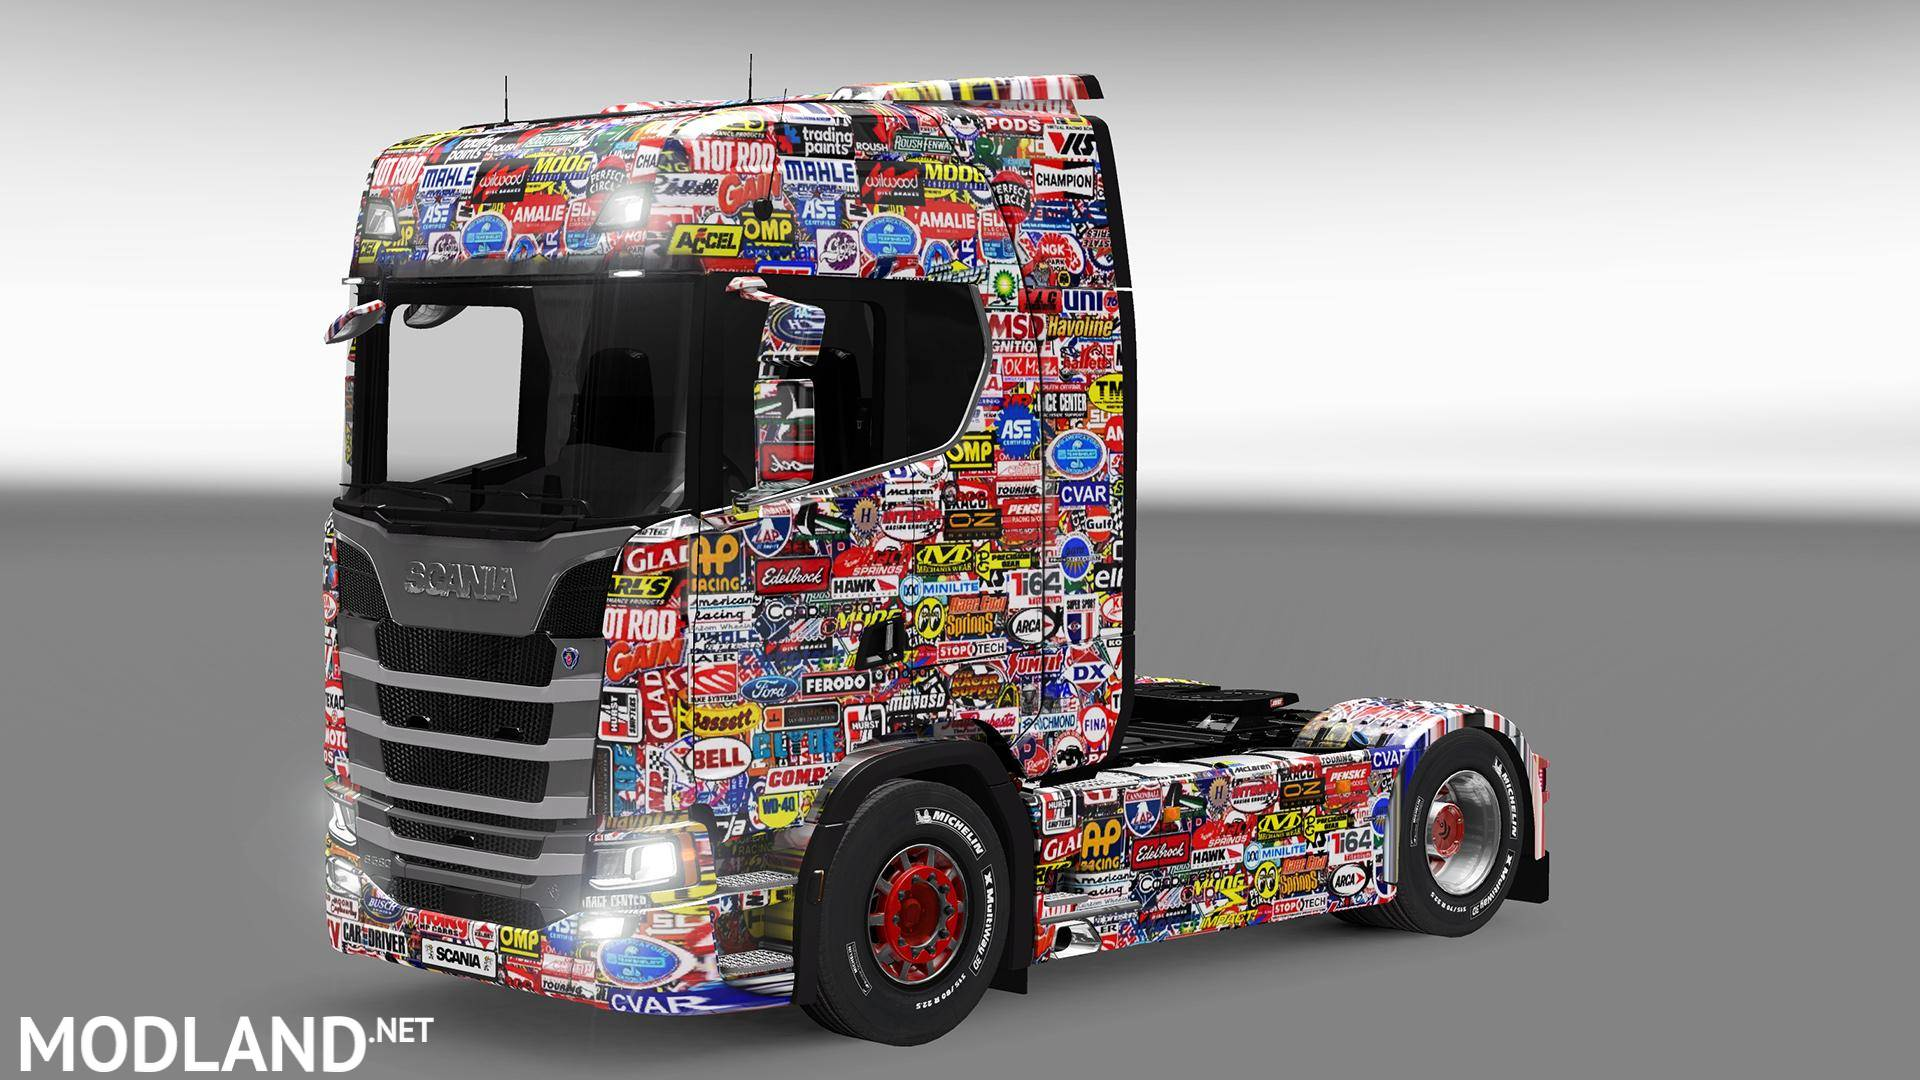 Scania s730 sticker bomb skin